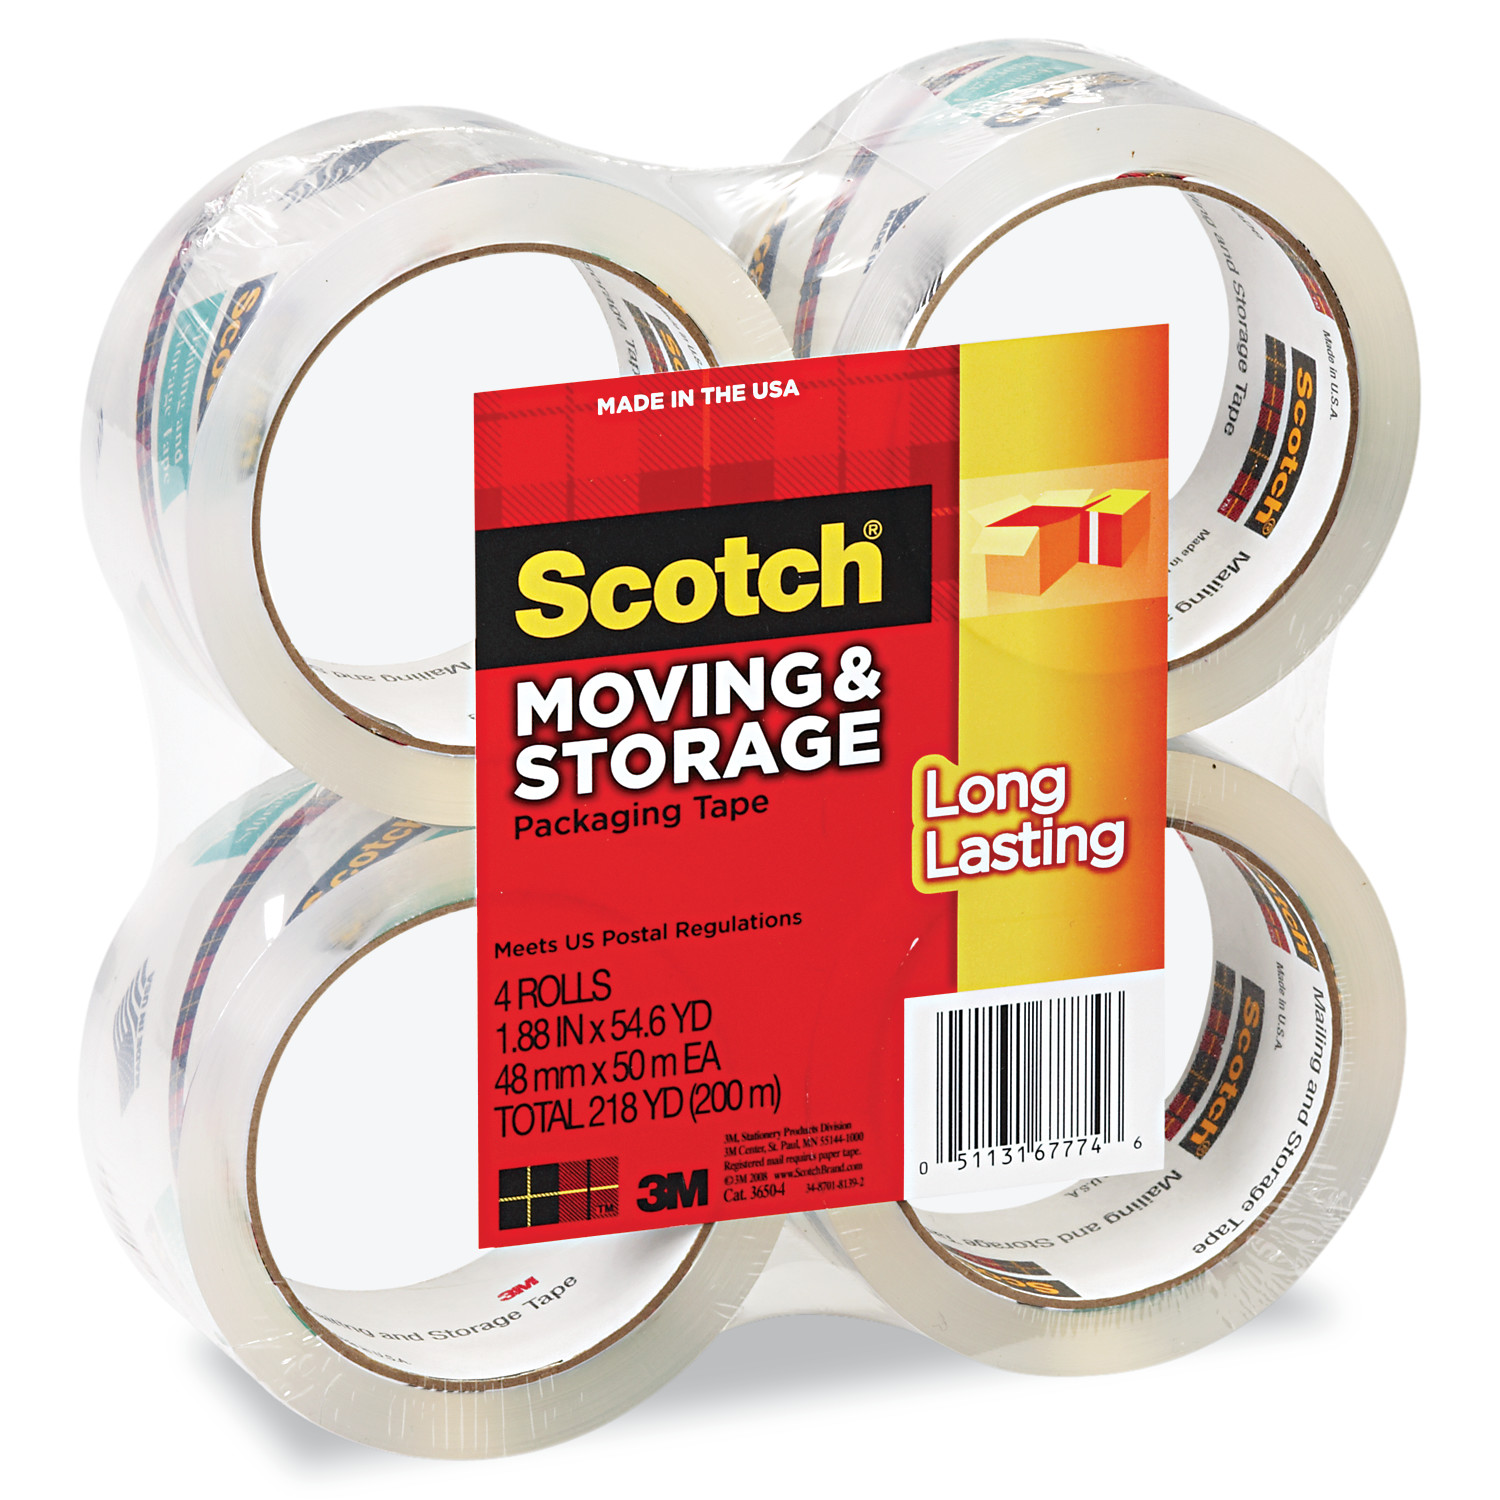 Scotch Long Lasting Storage & Packaging Tape 4 Pack, 1.88 in. x 54.6 yd. per Roll, Clear, 4 Rolls/Pack